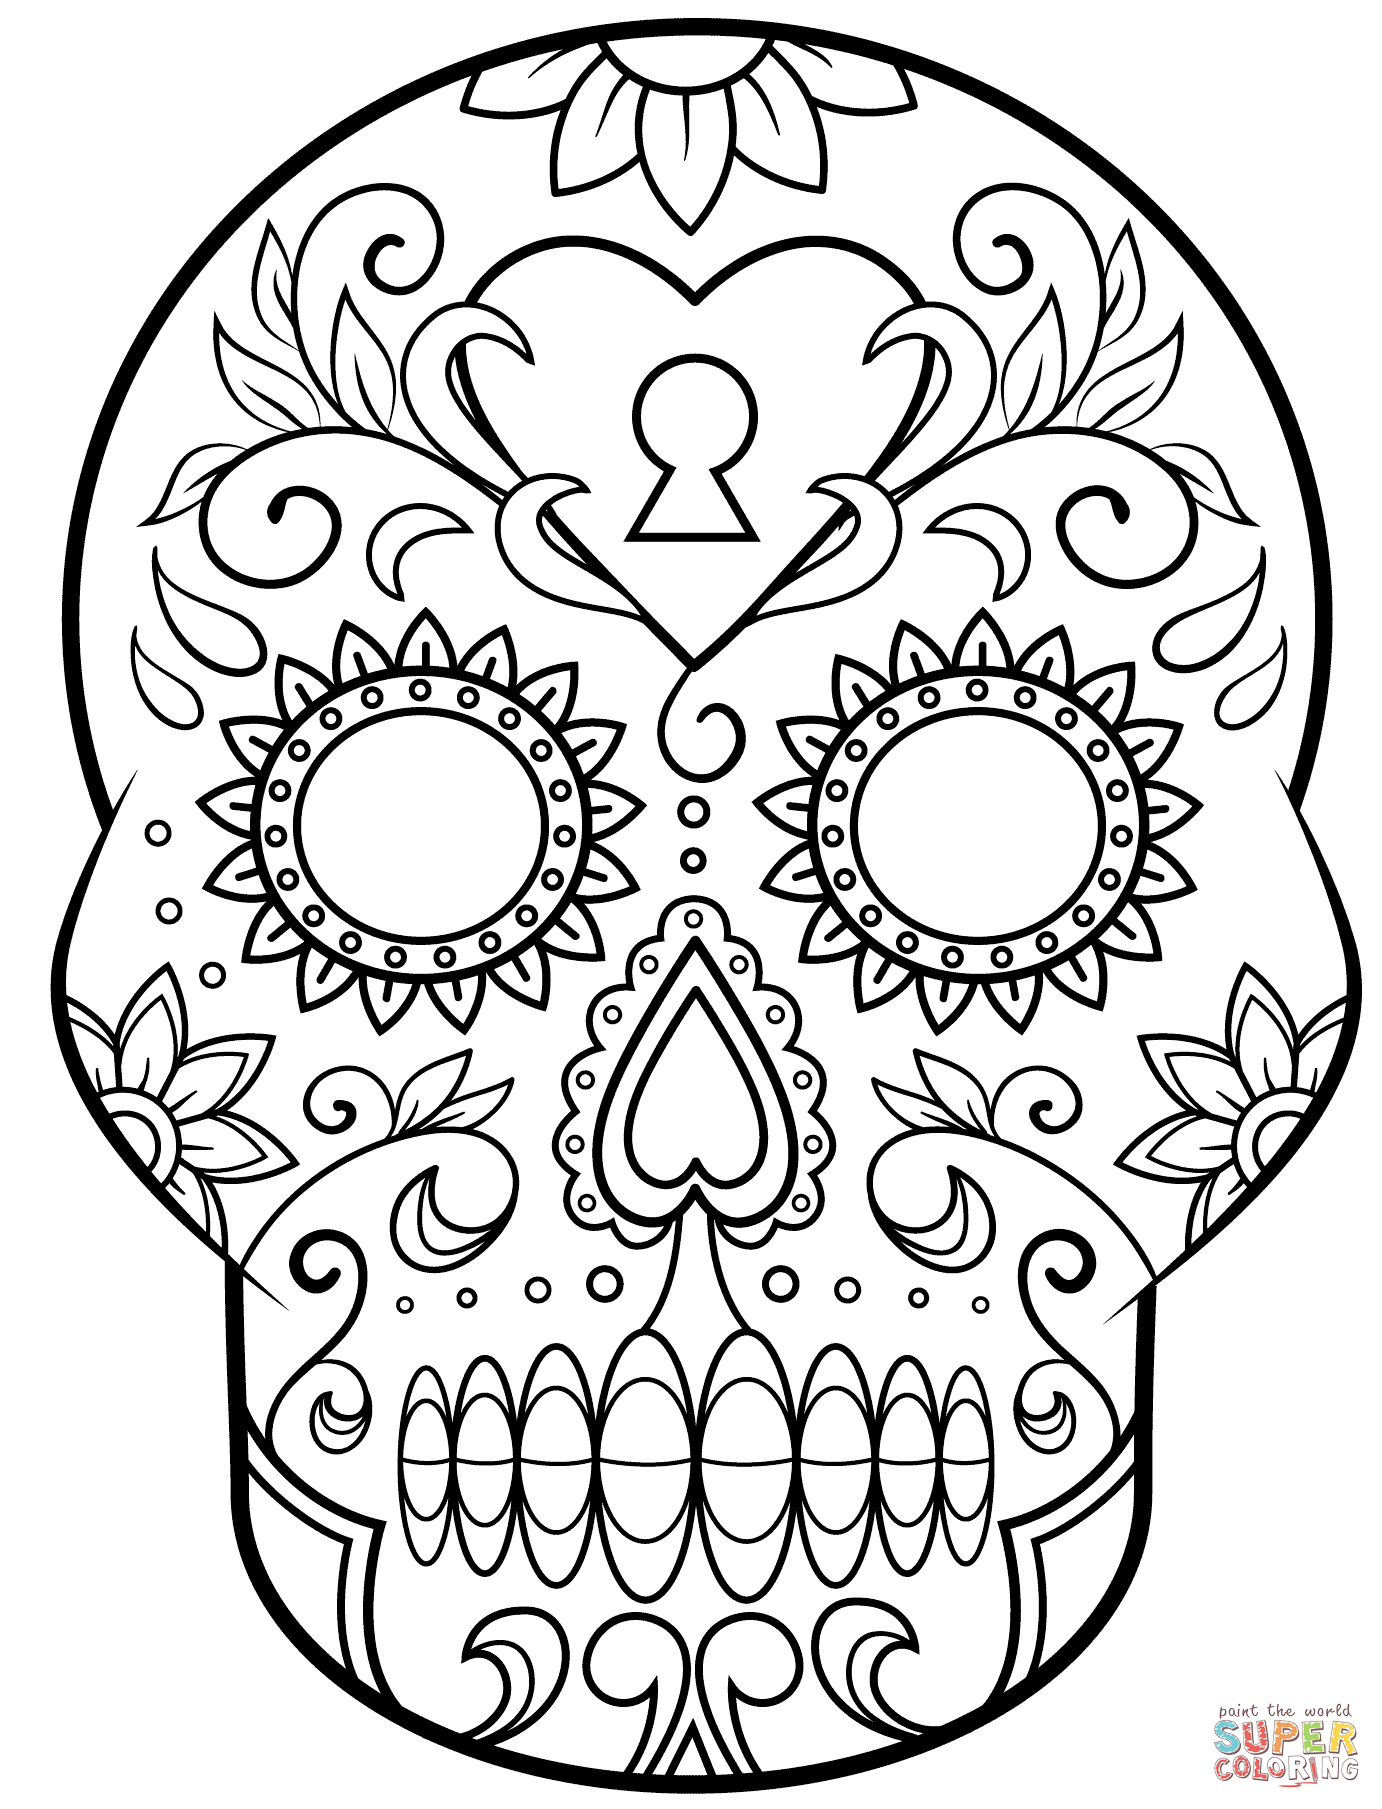 Day of the Dead Sugar Skull coloring page | Free Printable ...